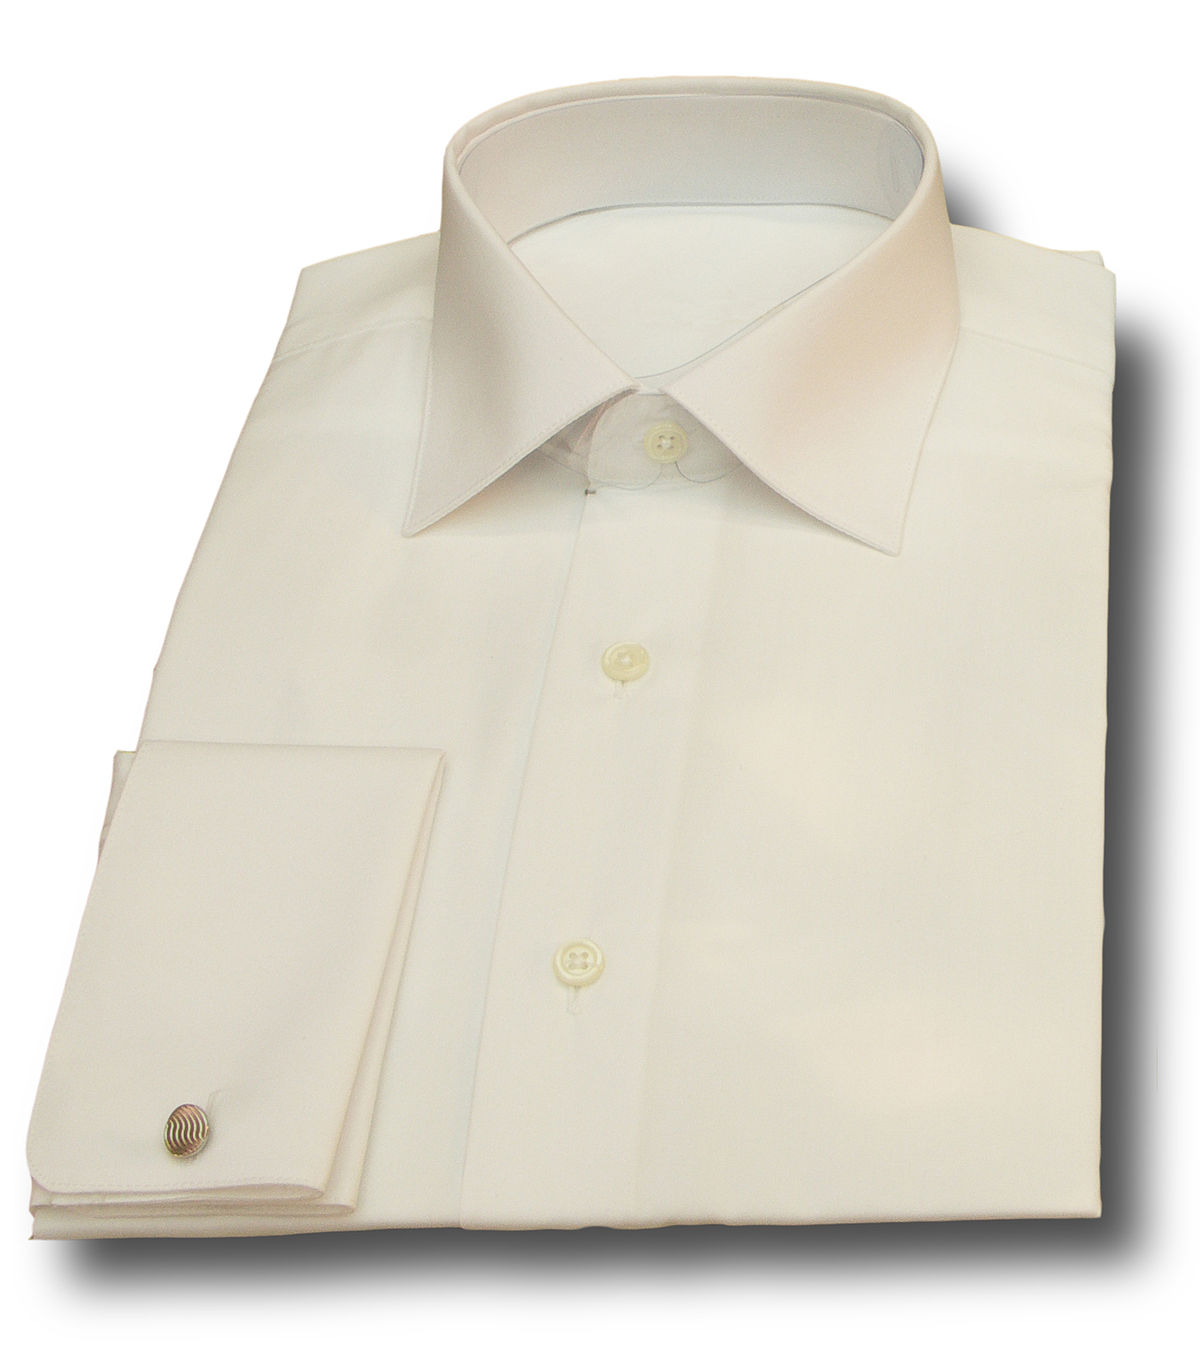 67f75b48c45 Dress shirt - Wikipedia